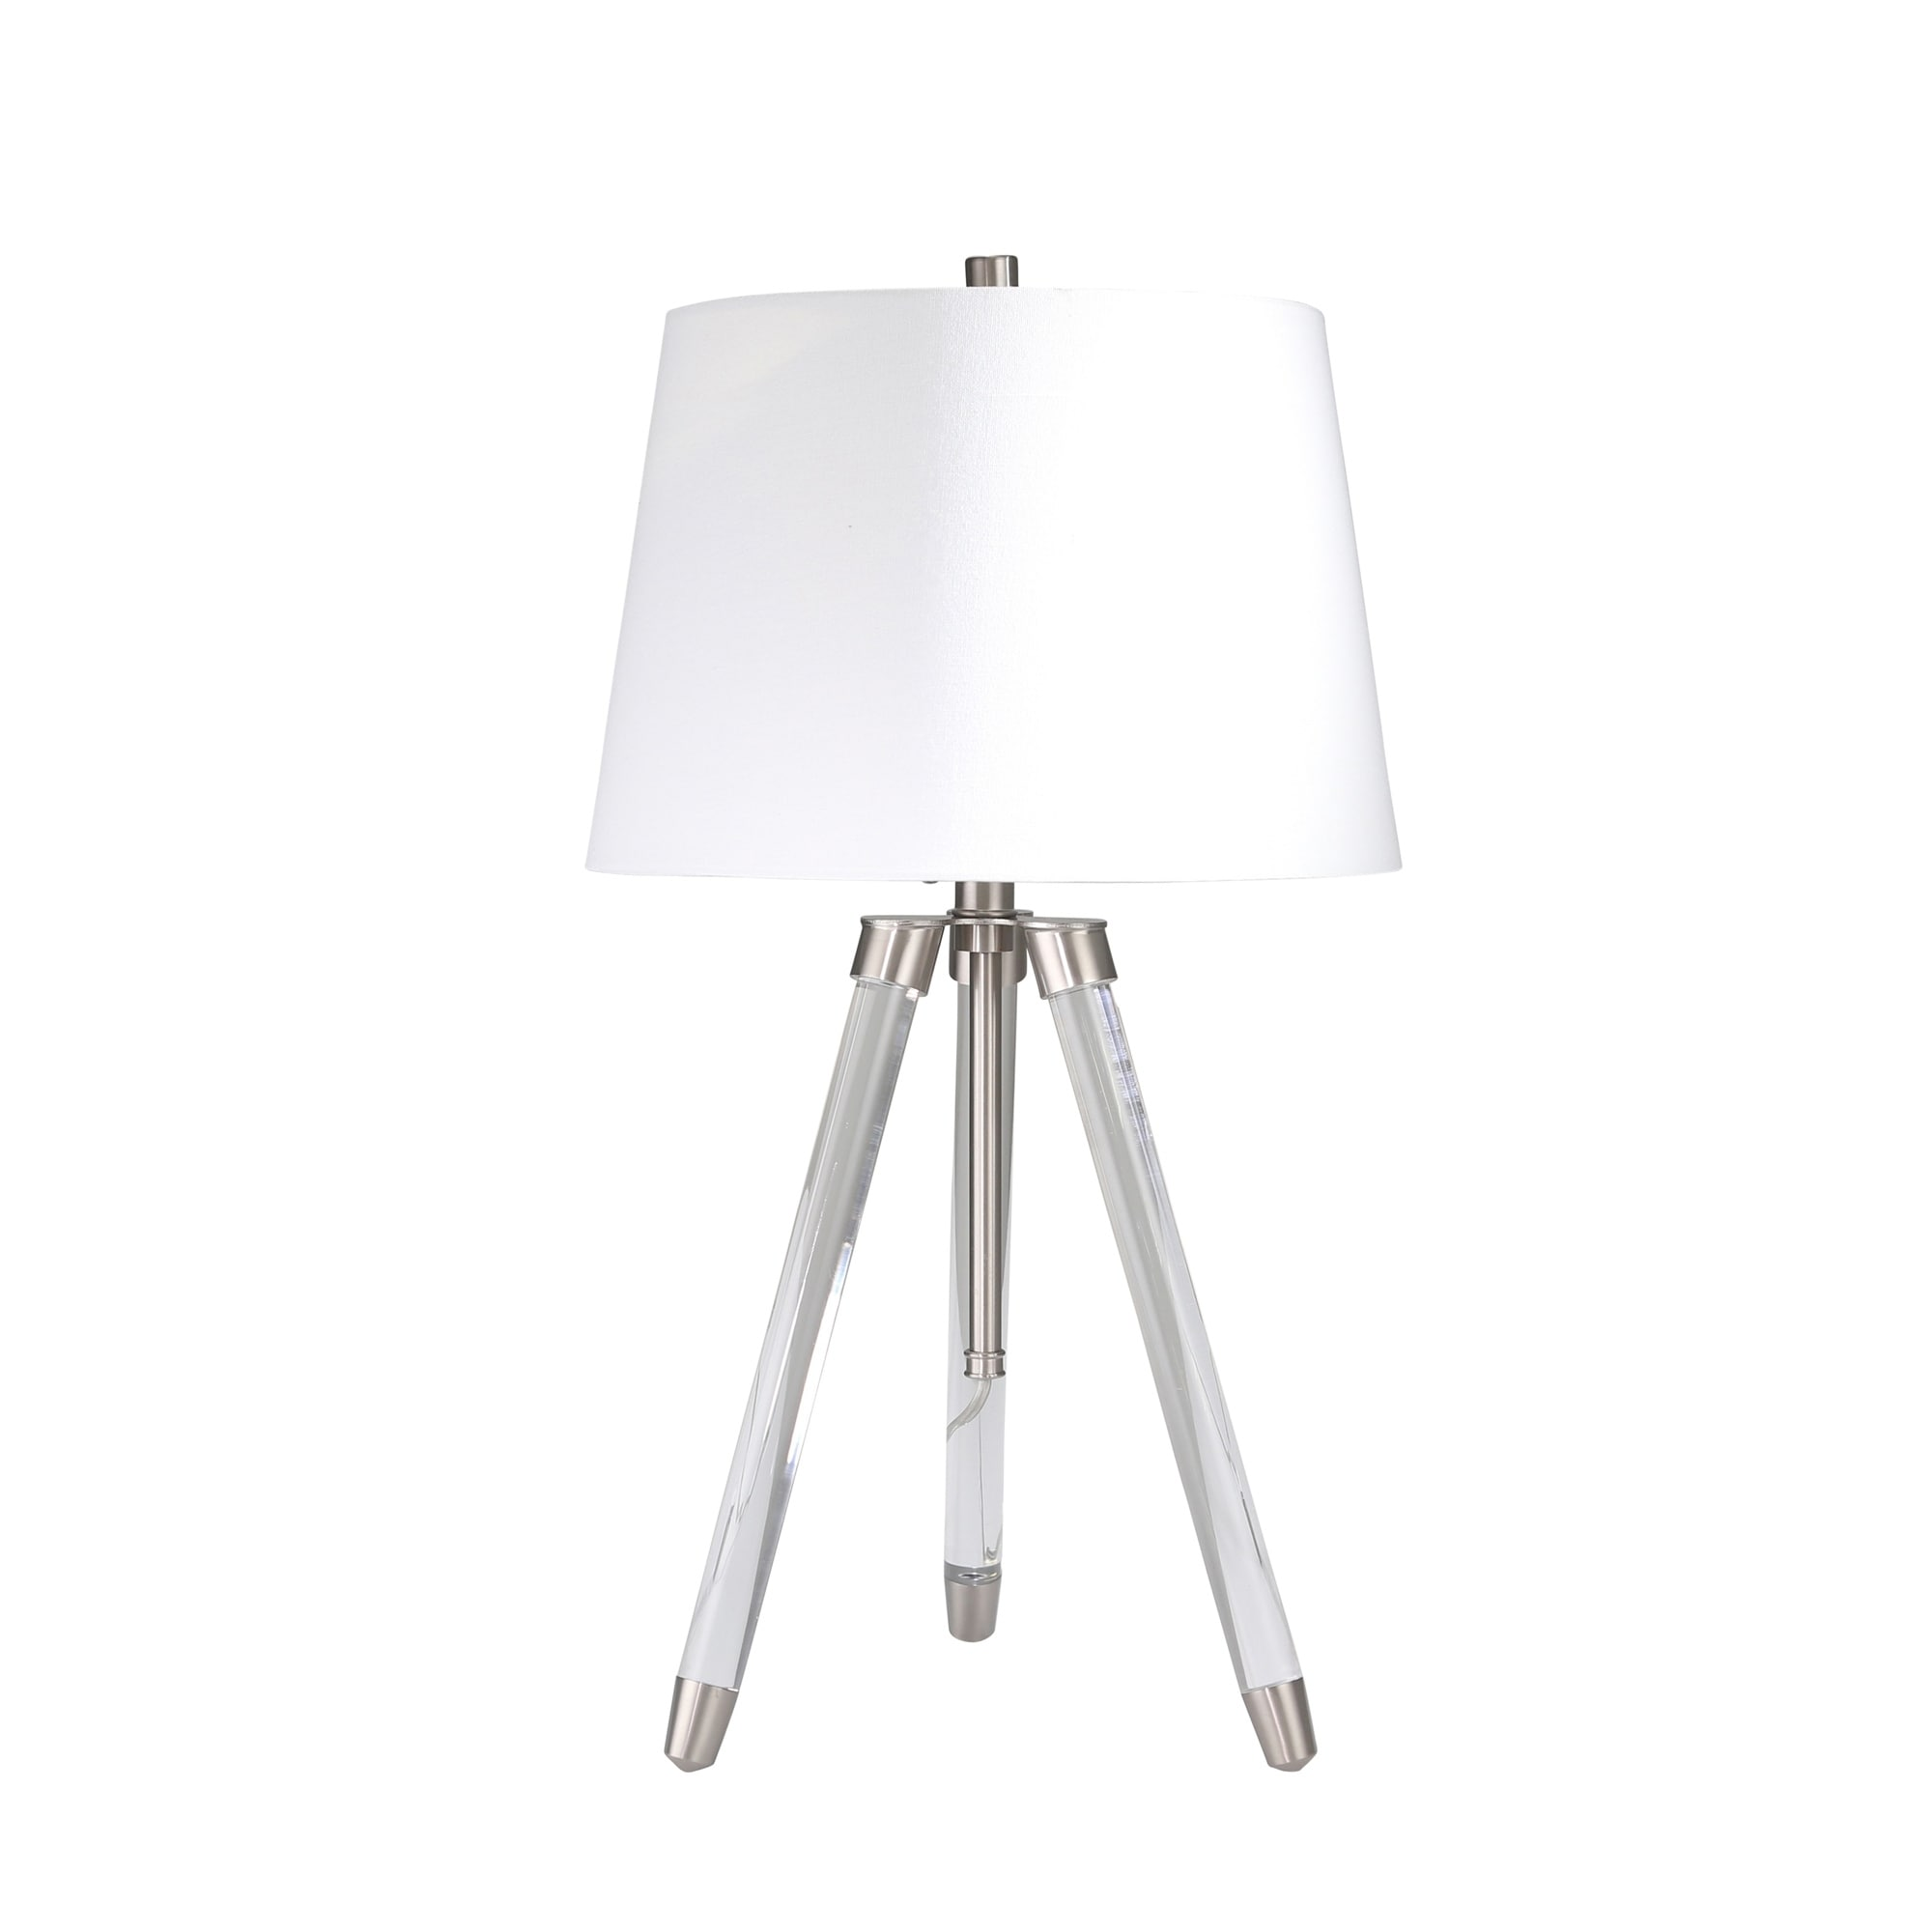 hight resolution of shop acrylic adjustable tripod table lamp clear silver 31 free shipping today overstock 25623379